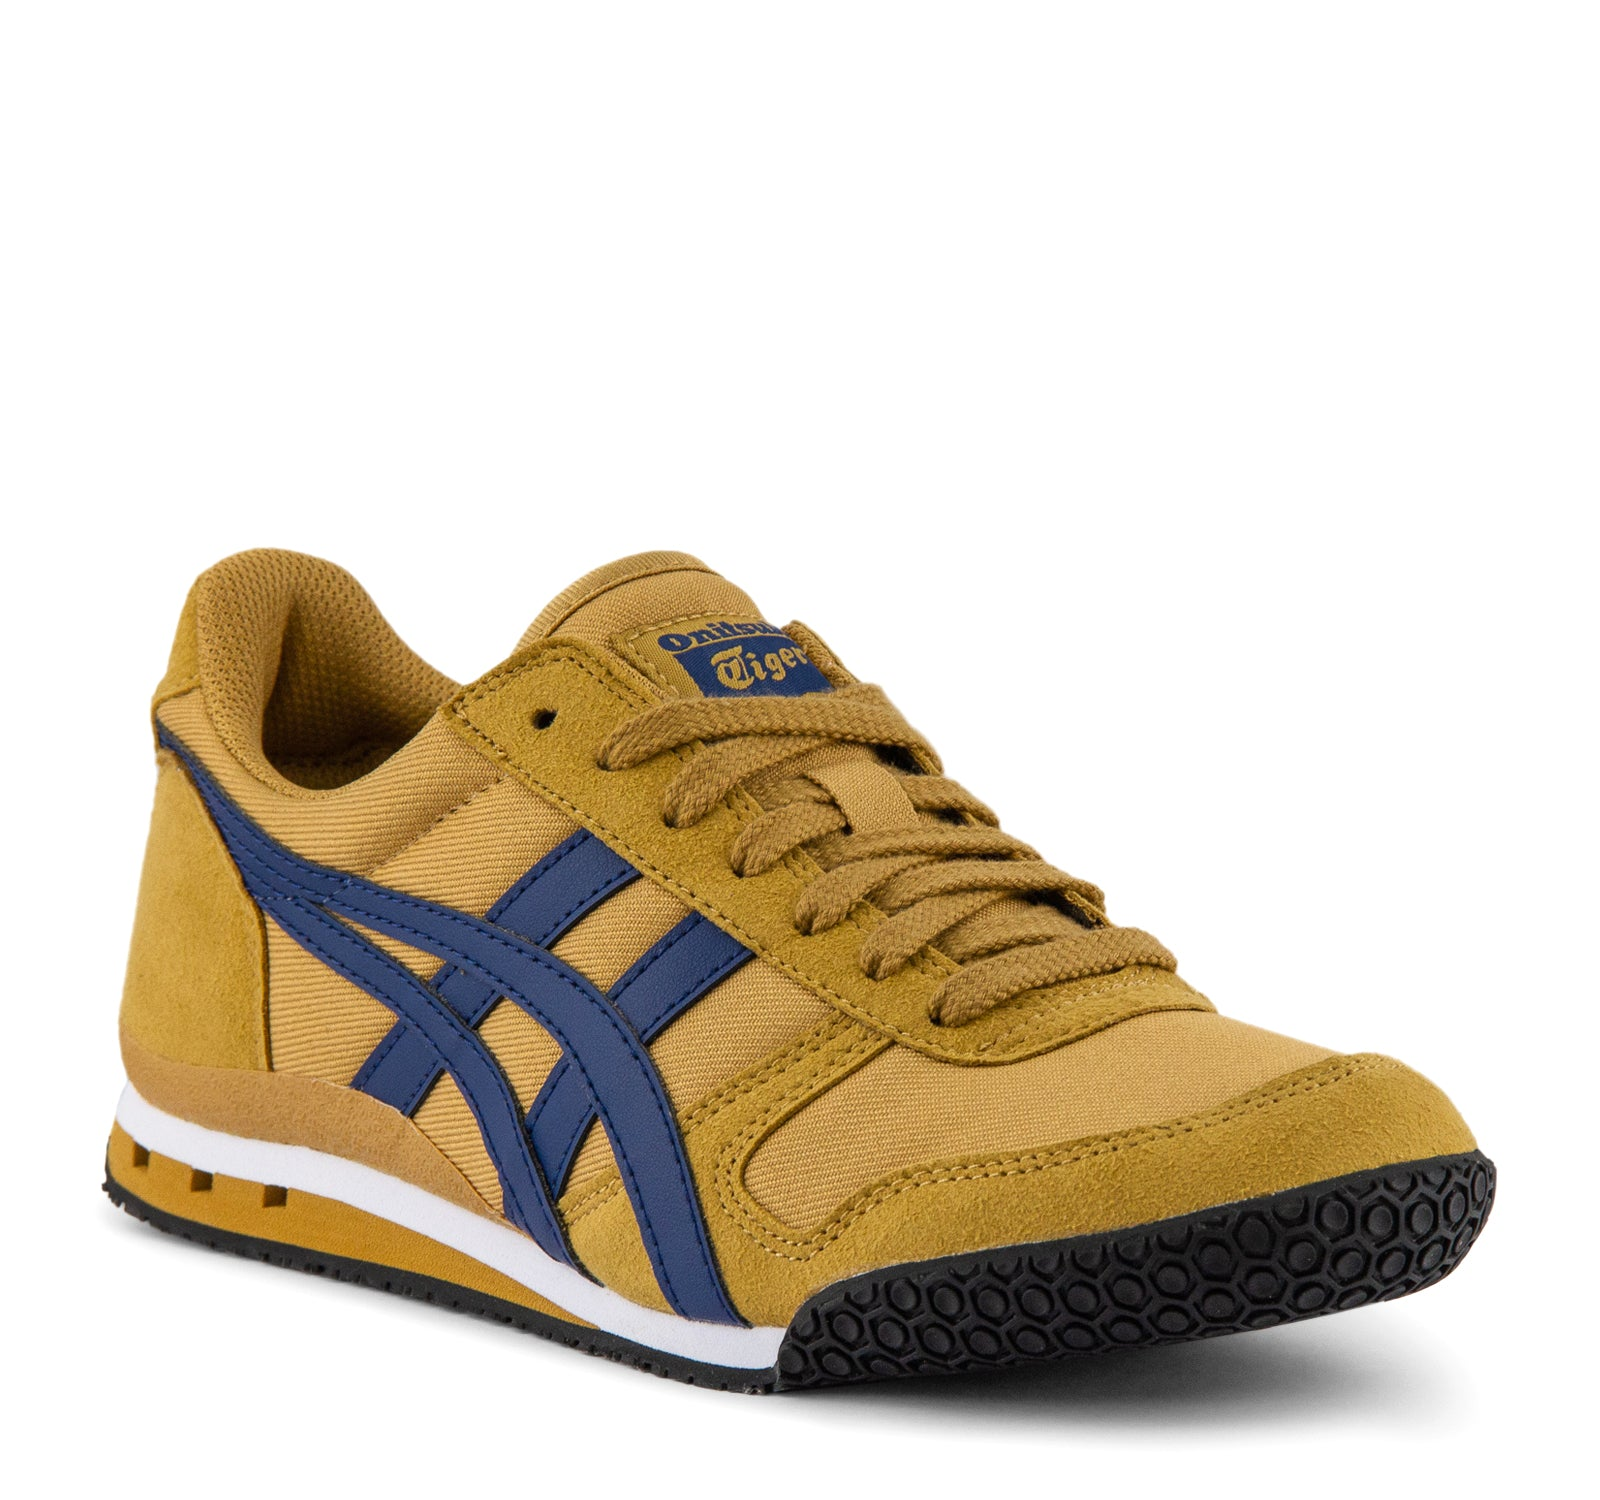 low priced 619e0 028ea Onitsuka Tiger Ultimate 81 Sneaker in Caravan and Blue – On ...